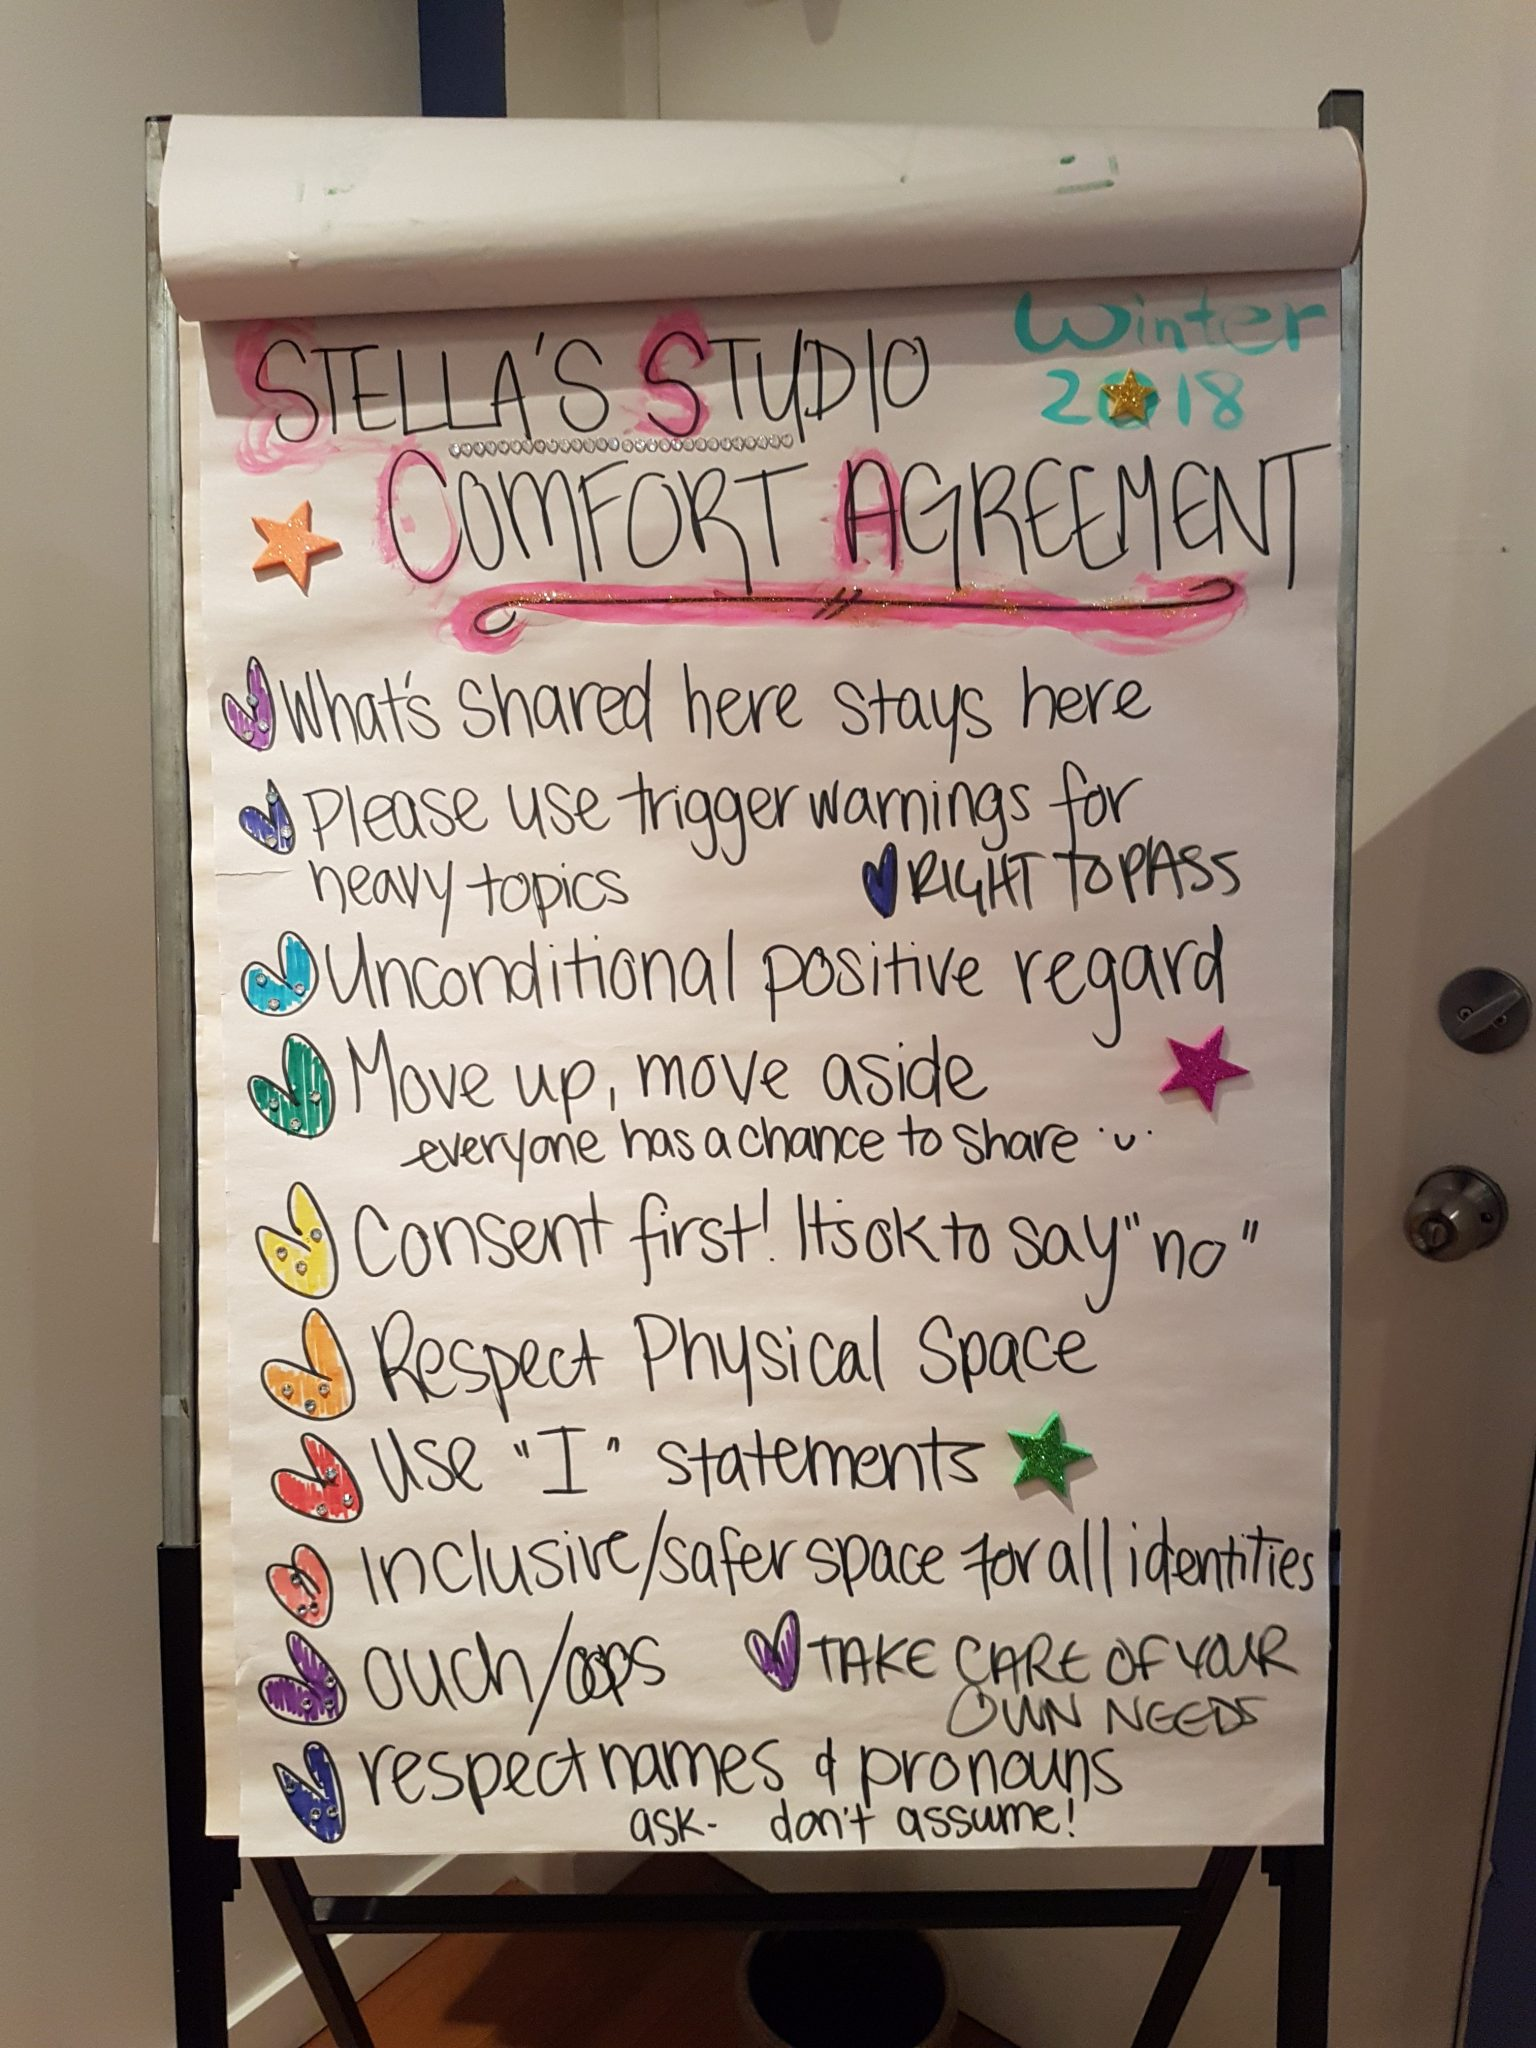 """A big sheet of paper with hand drawn marker messages on it with """"Stella's Studio Comfort Agreement"""" at the top."""